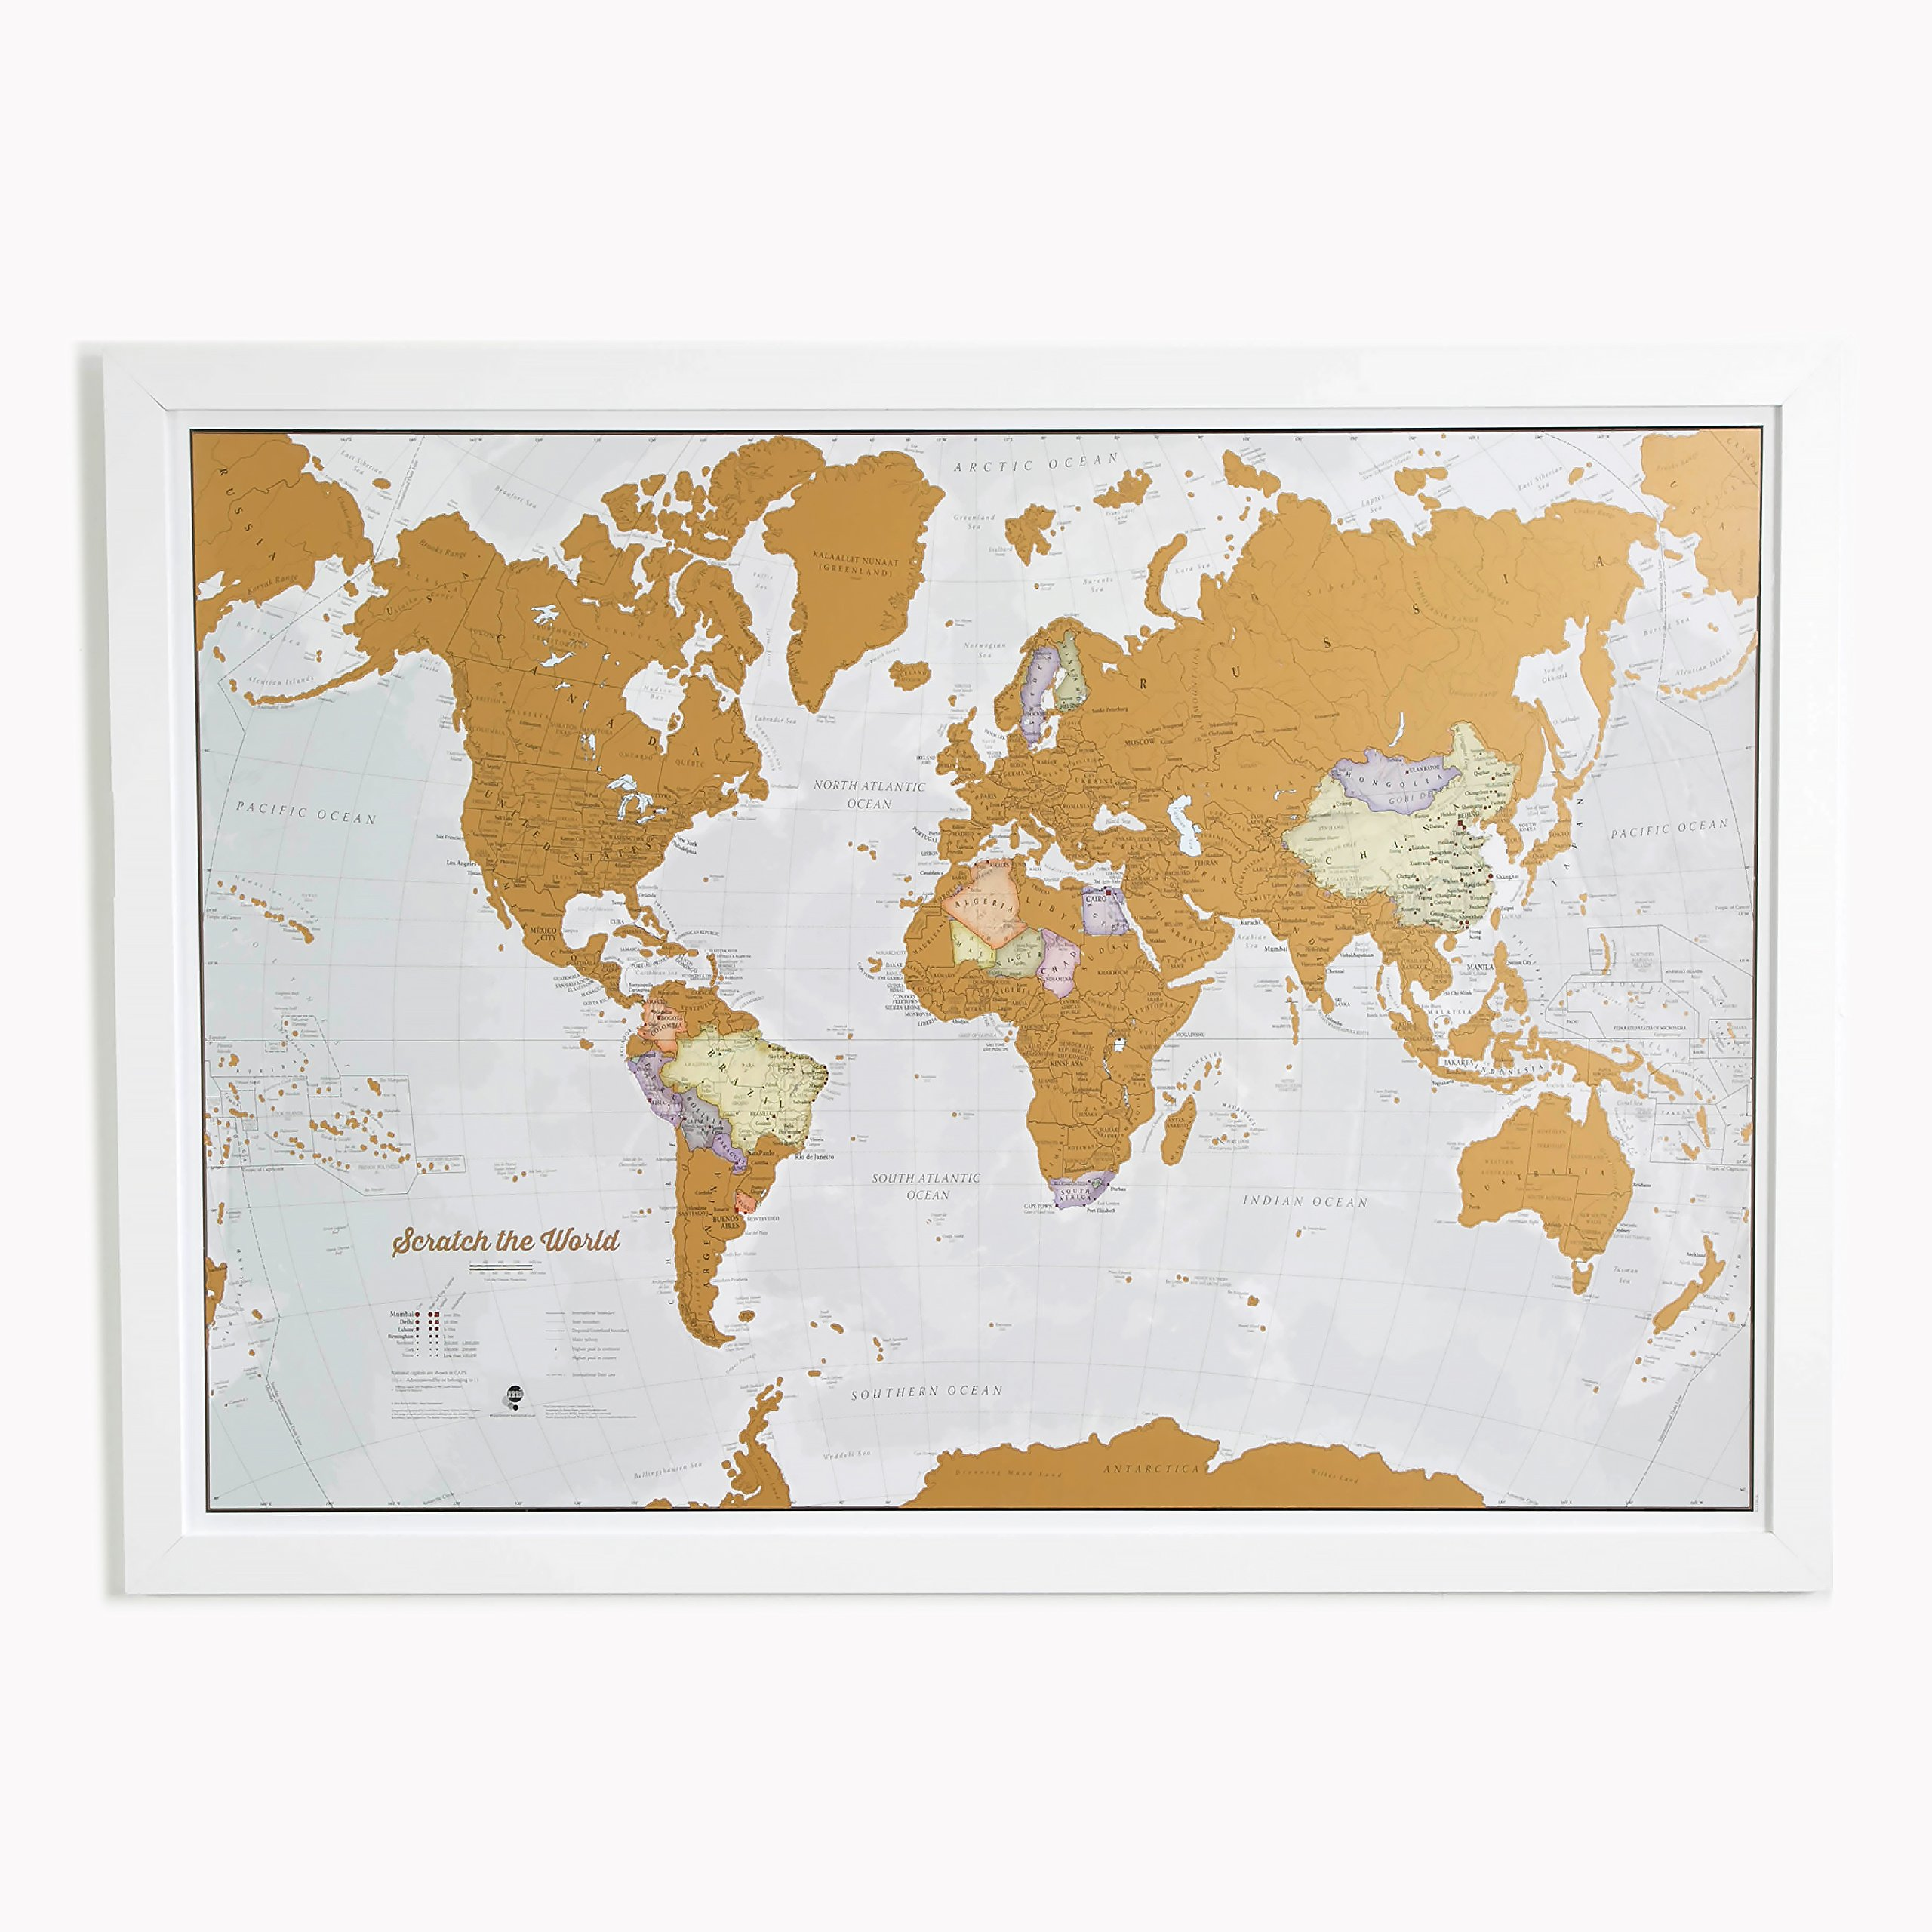 Scratch off your world map travel poster detailed cartography 33 x scratch off your world map travel poster detailed cartography 33 x 23 inches gumiabroncs Images